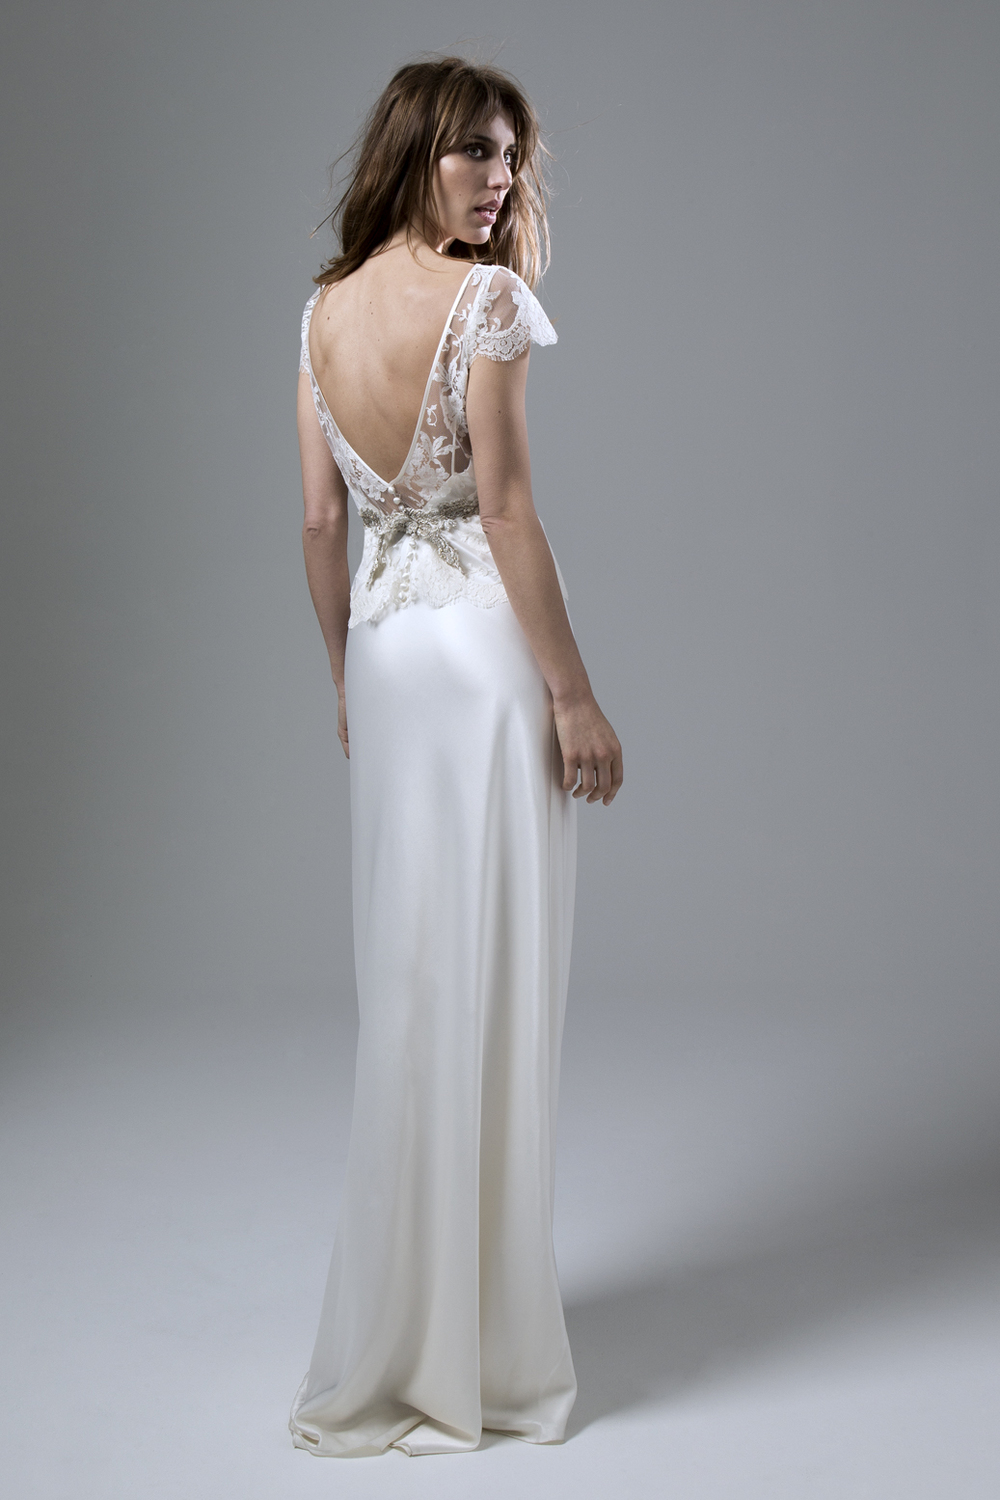 Iris French Lace Jacket And Iris Low Backed Satin Slip Wedding Dress By  Halfpenny London